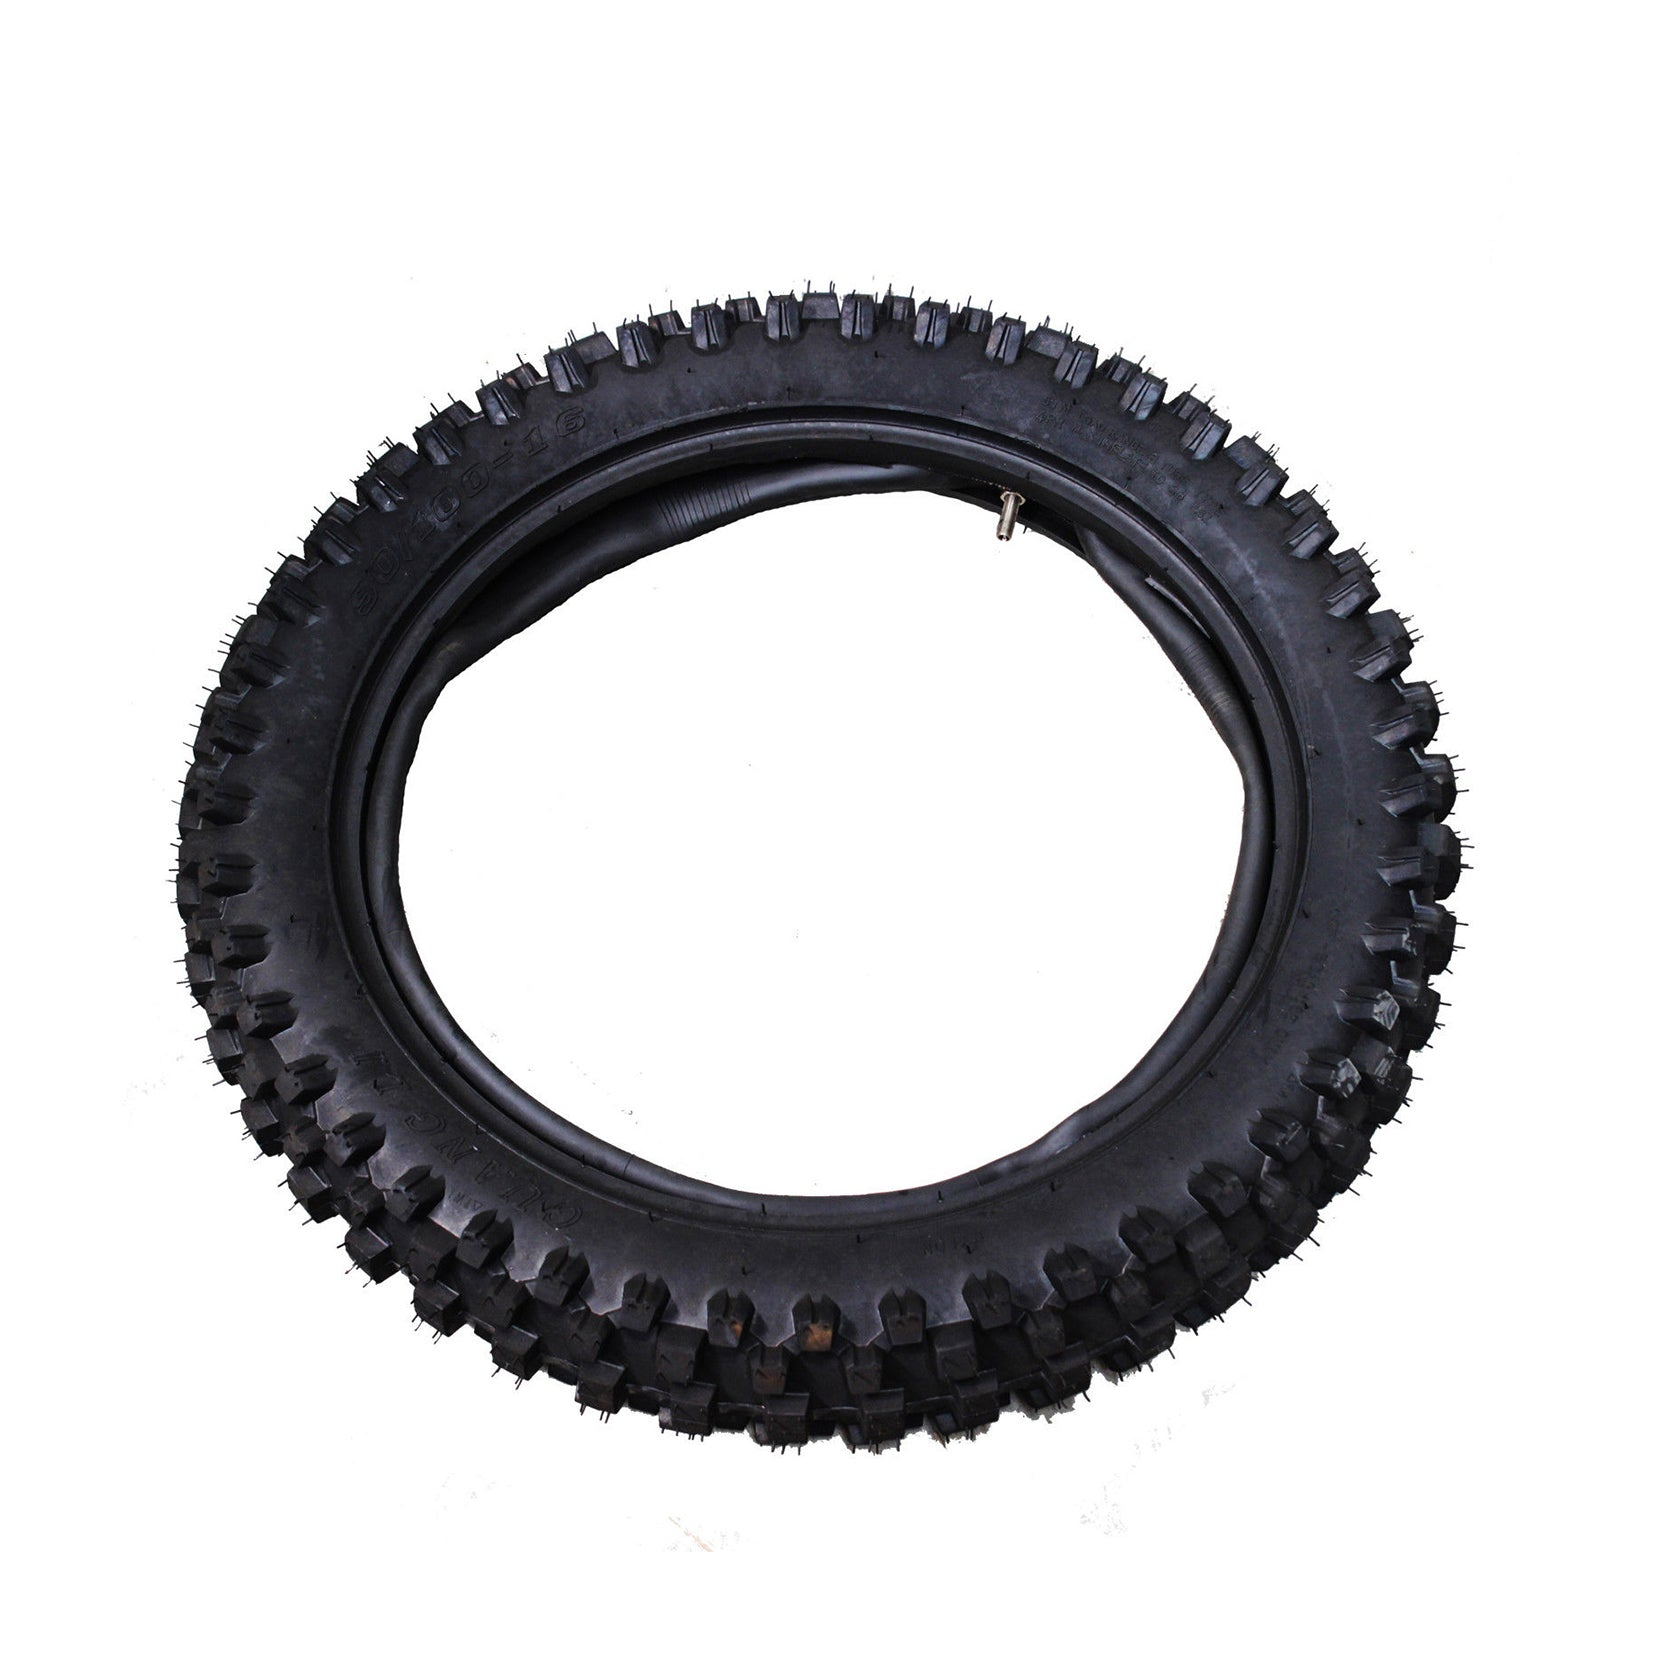 "16"" Inch 90x100-16 Tyre Tire + Tube for 125cc 150cc Thumpstar Atomik Dirt bikes"